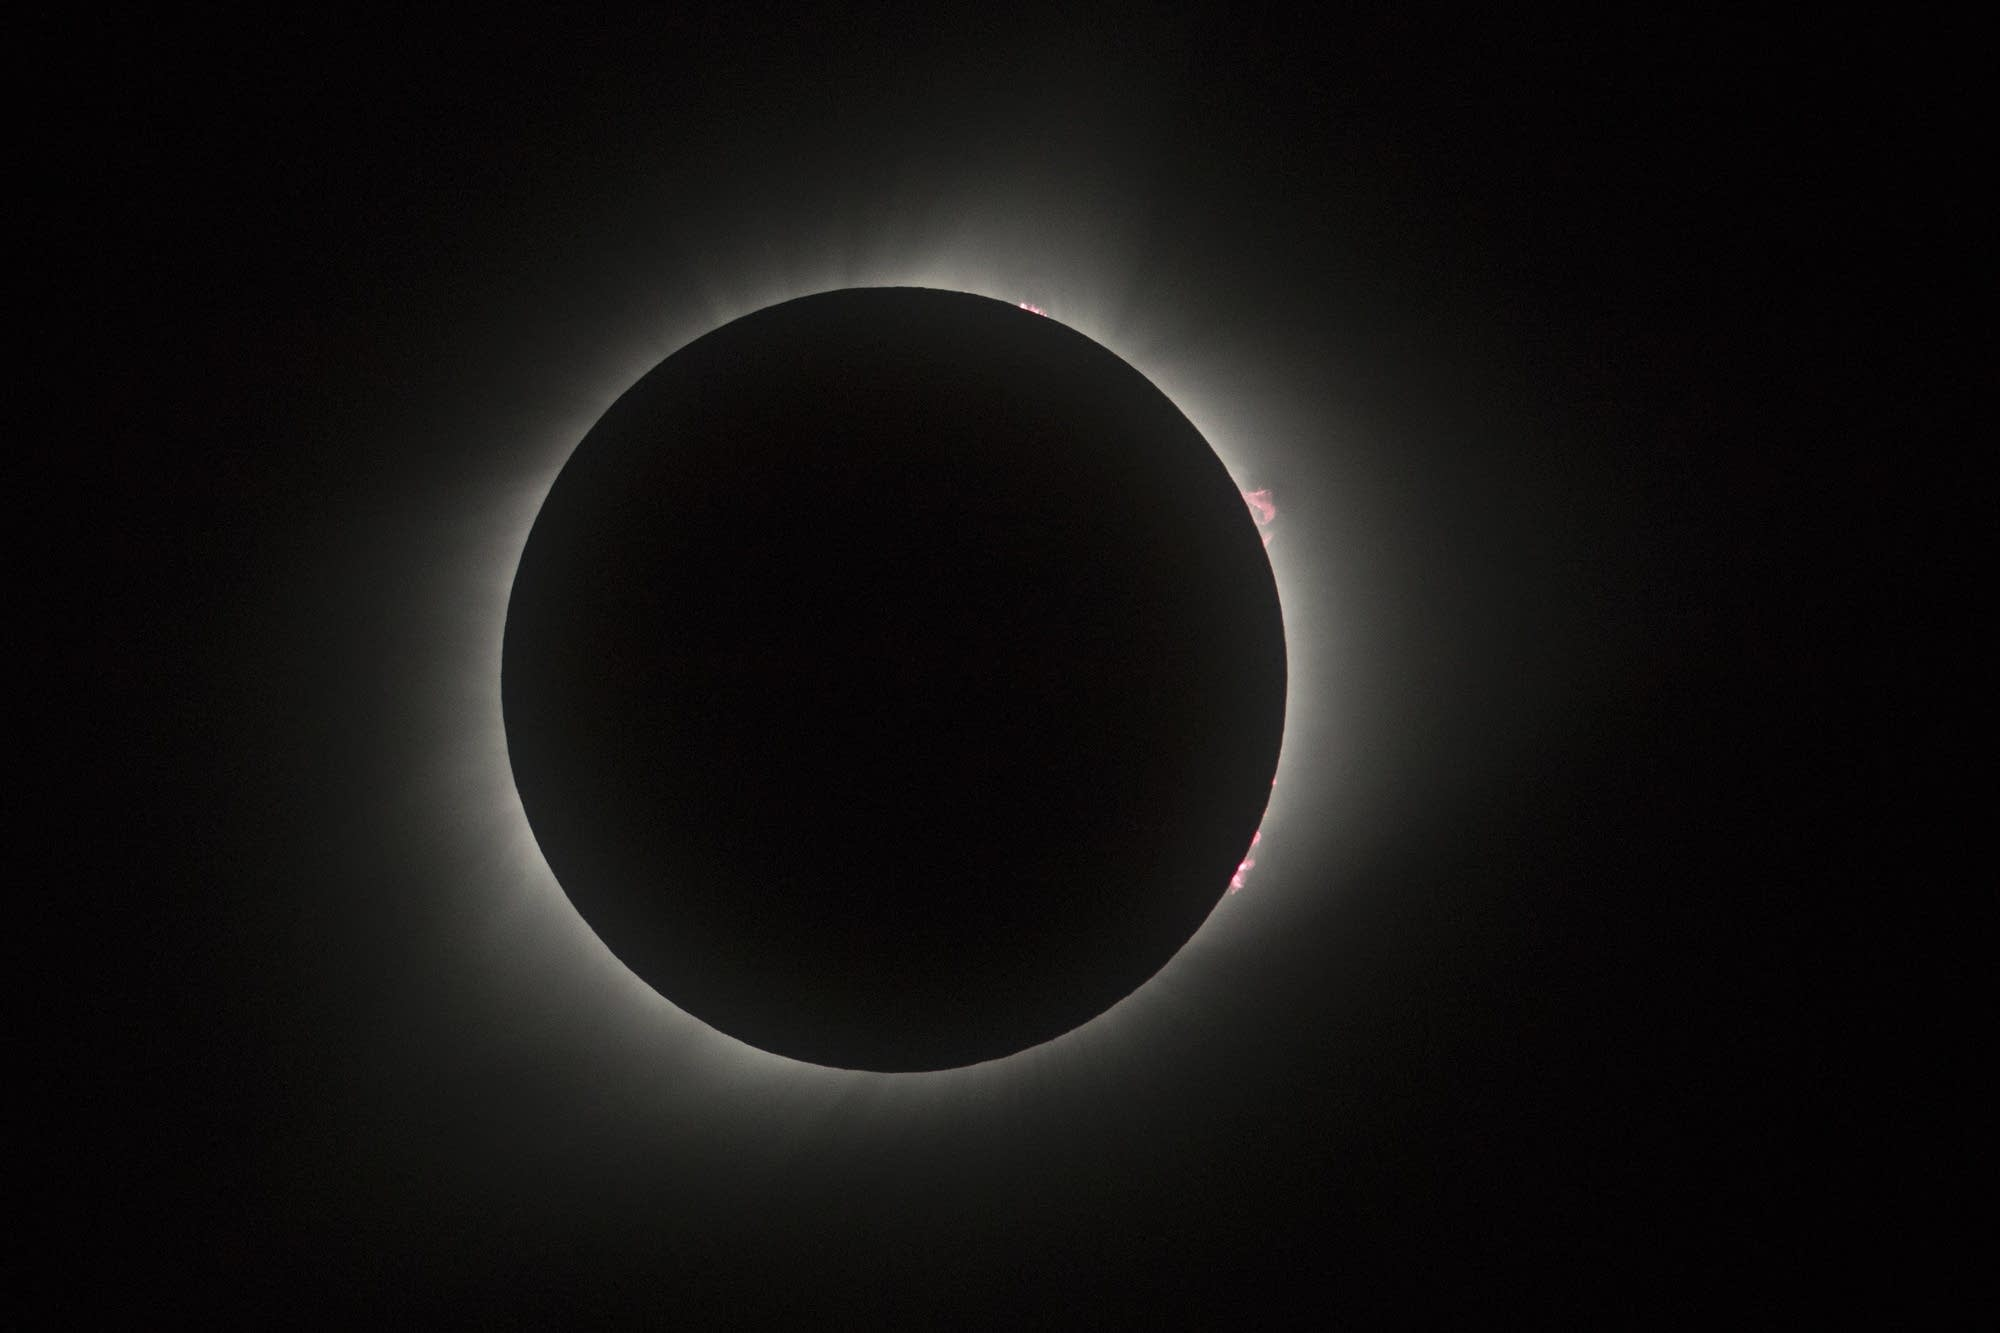 The total solar eclipse reveals the sun's corona.